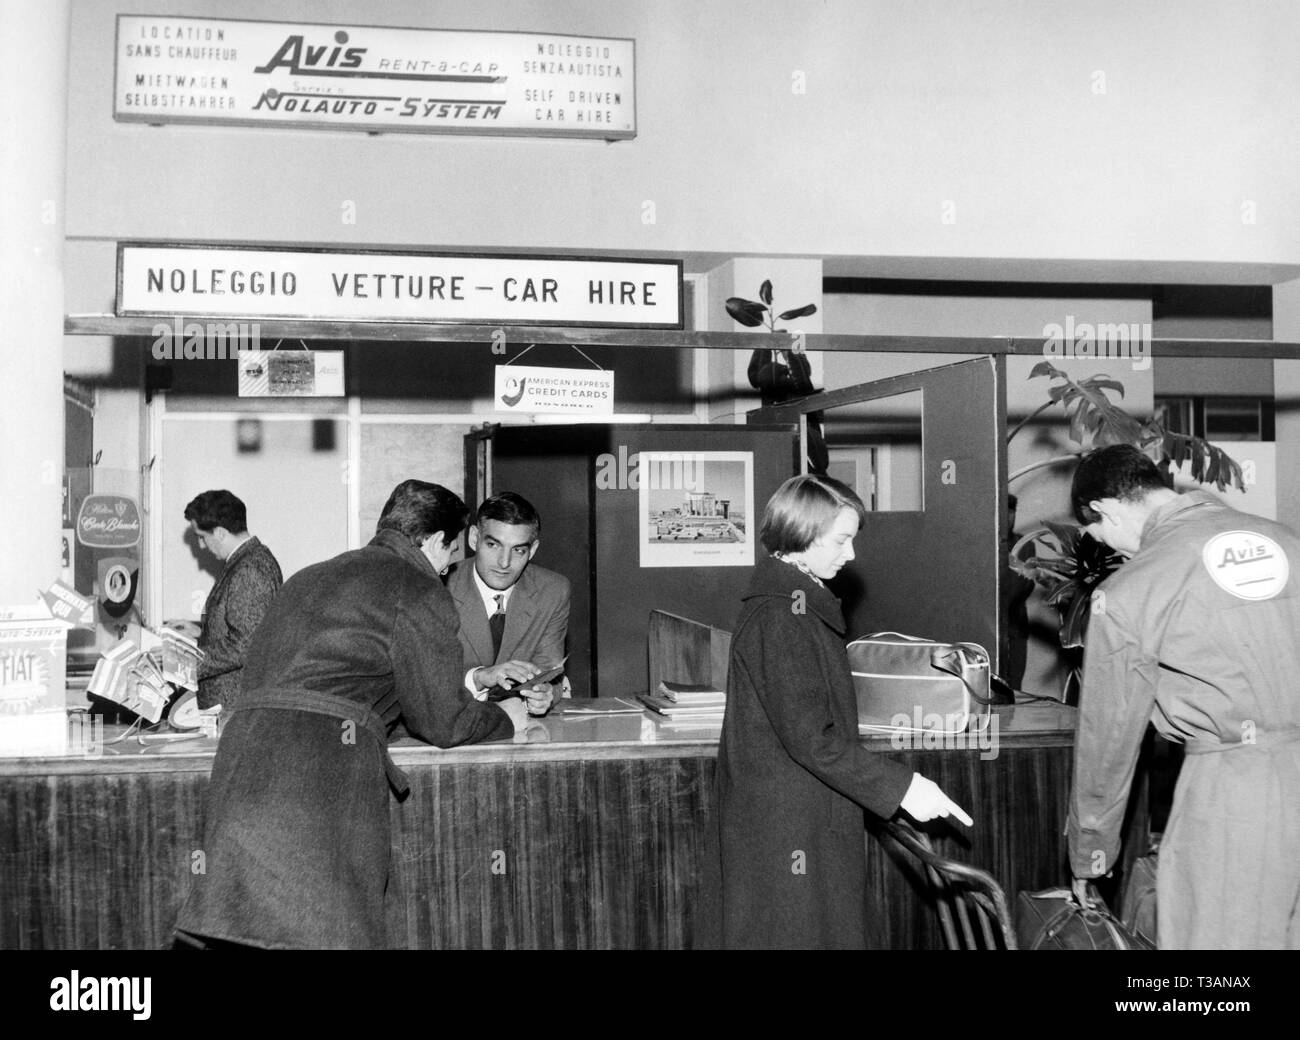 linate airport, car hire, 1963 - Stock Image